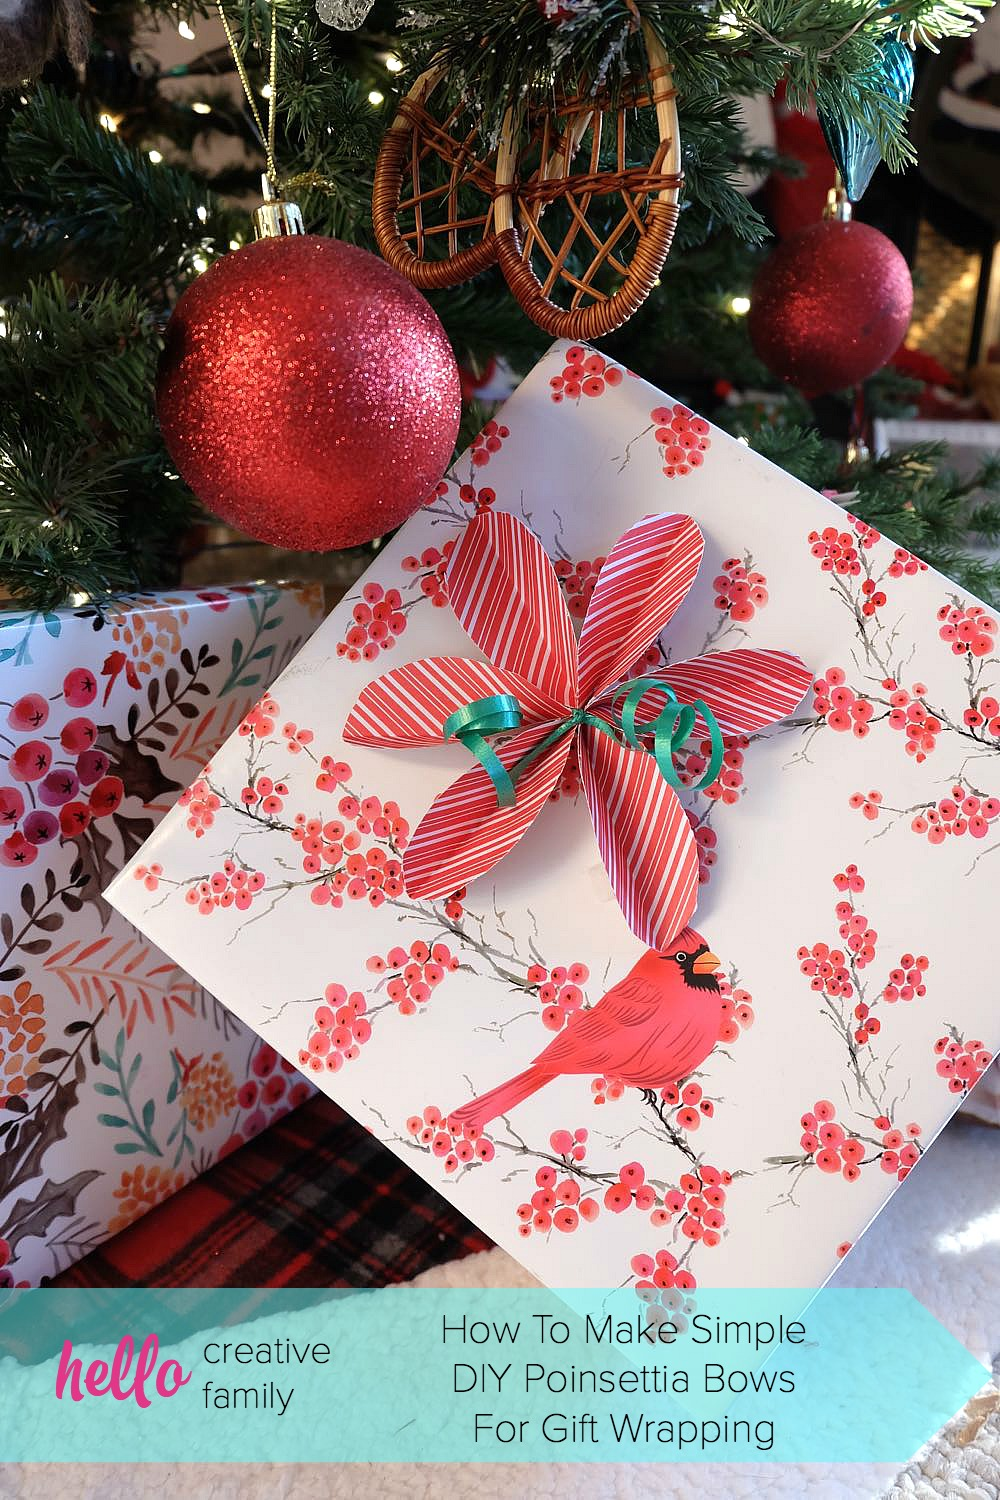 Easy To Make Christmas Gifts How to make simple diy poinsettia bows skip the store bought bows and diy them instead learn how to make super simple sisterspd